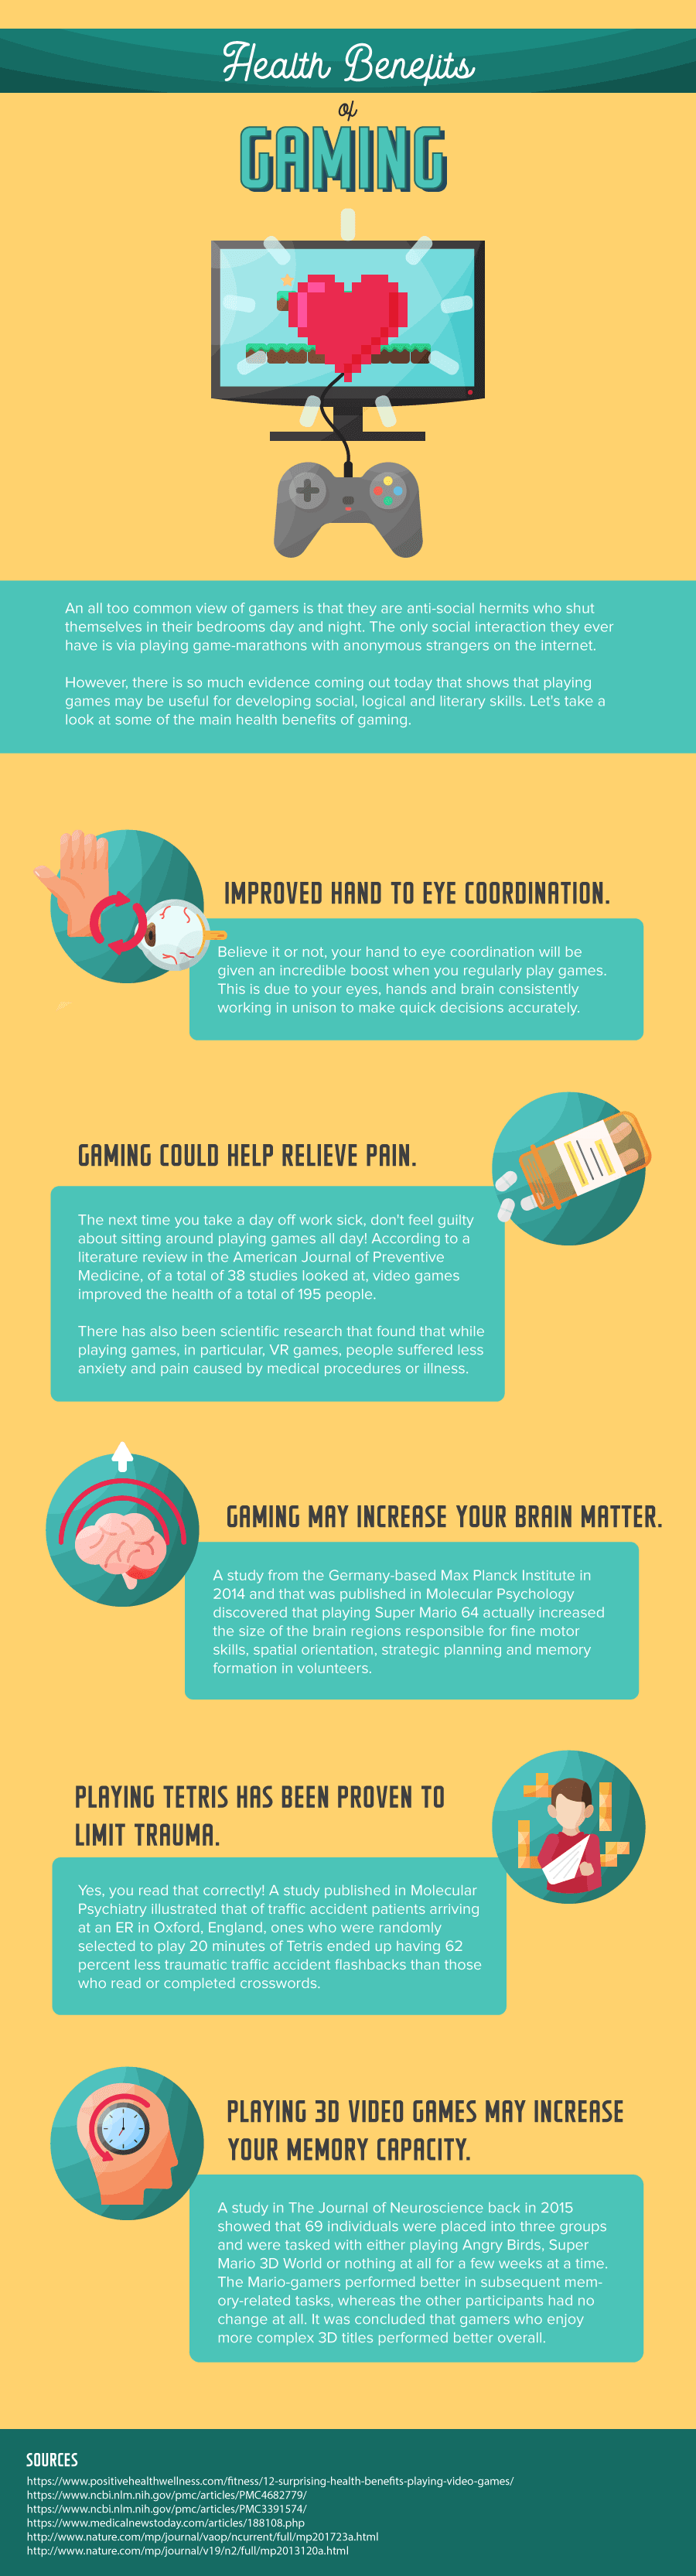 health benefits of gaming infographic